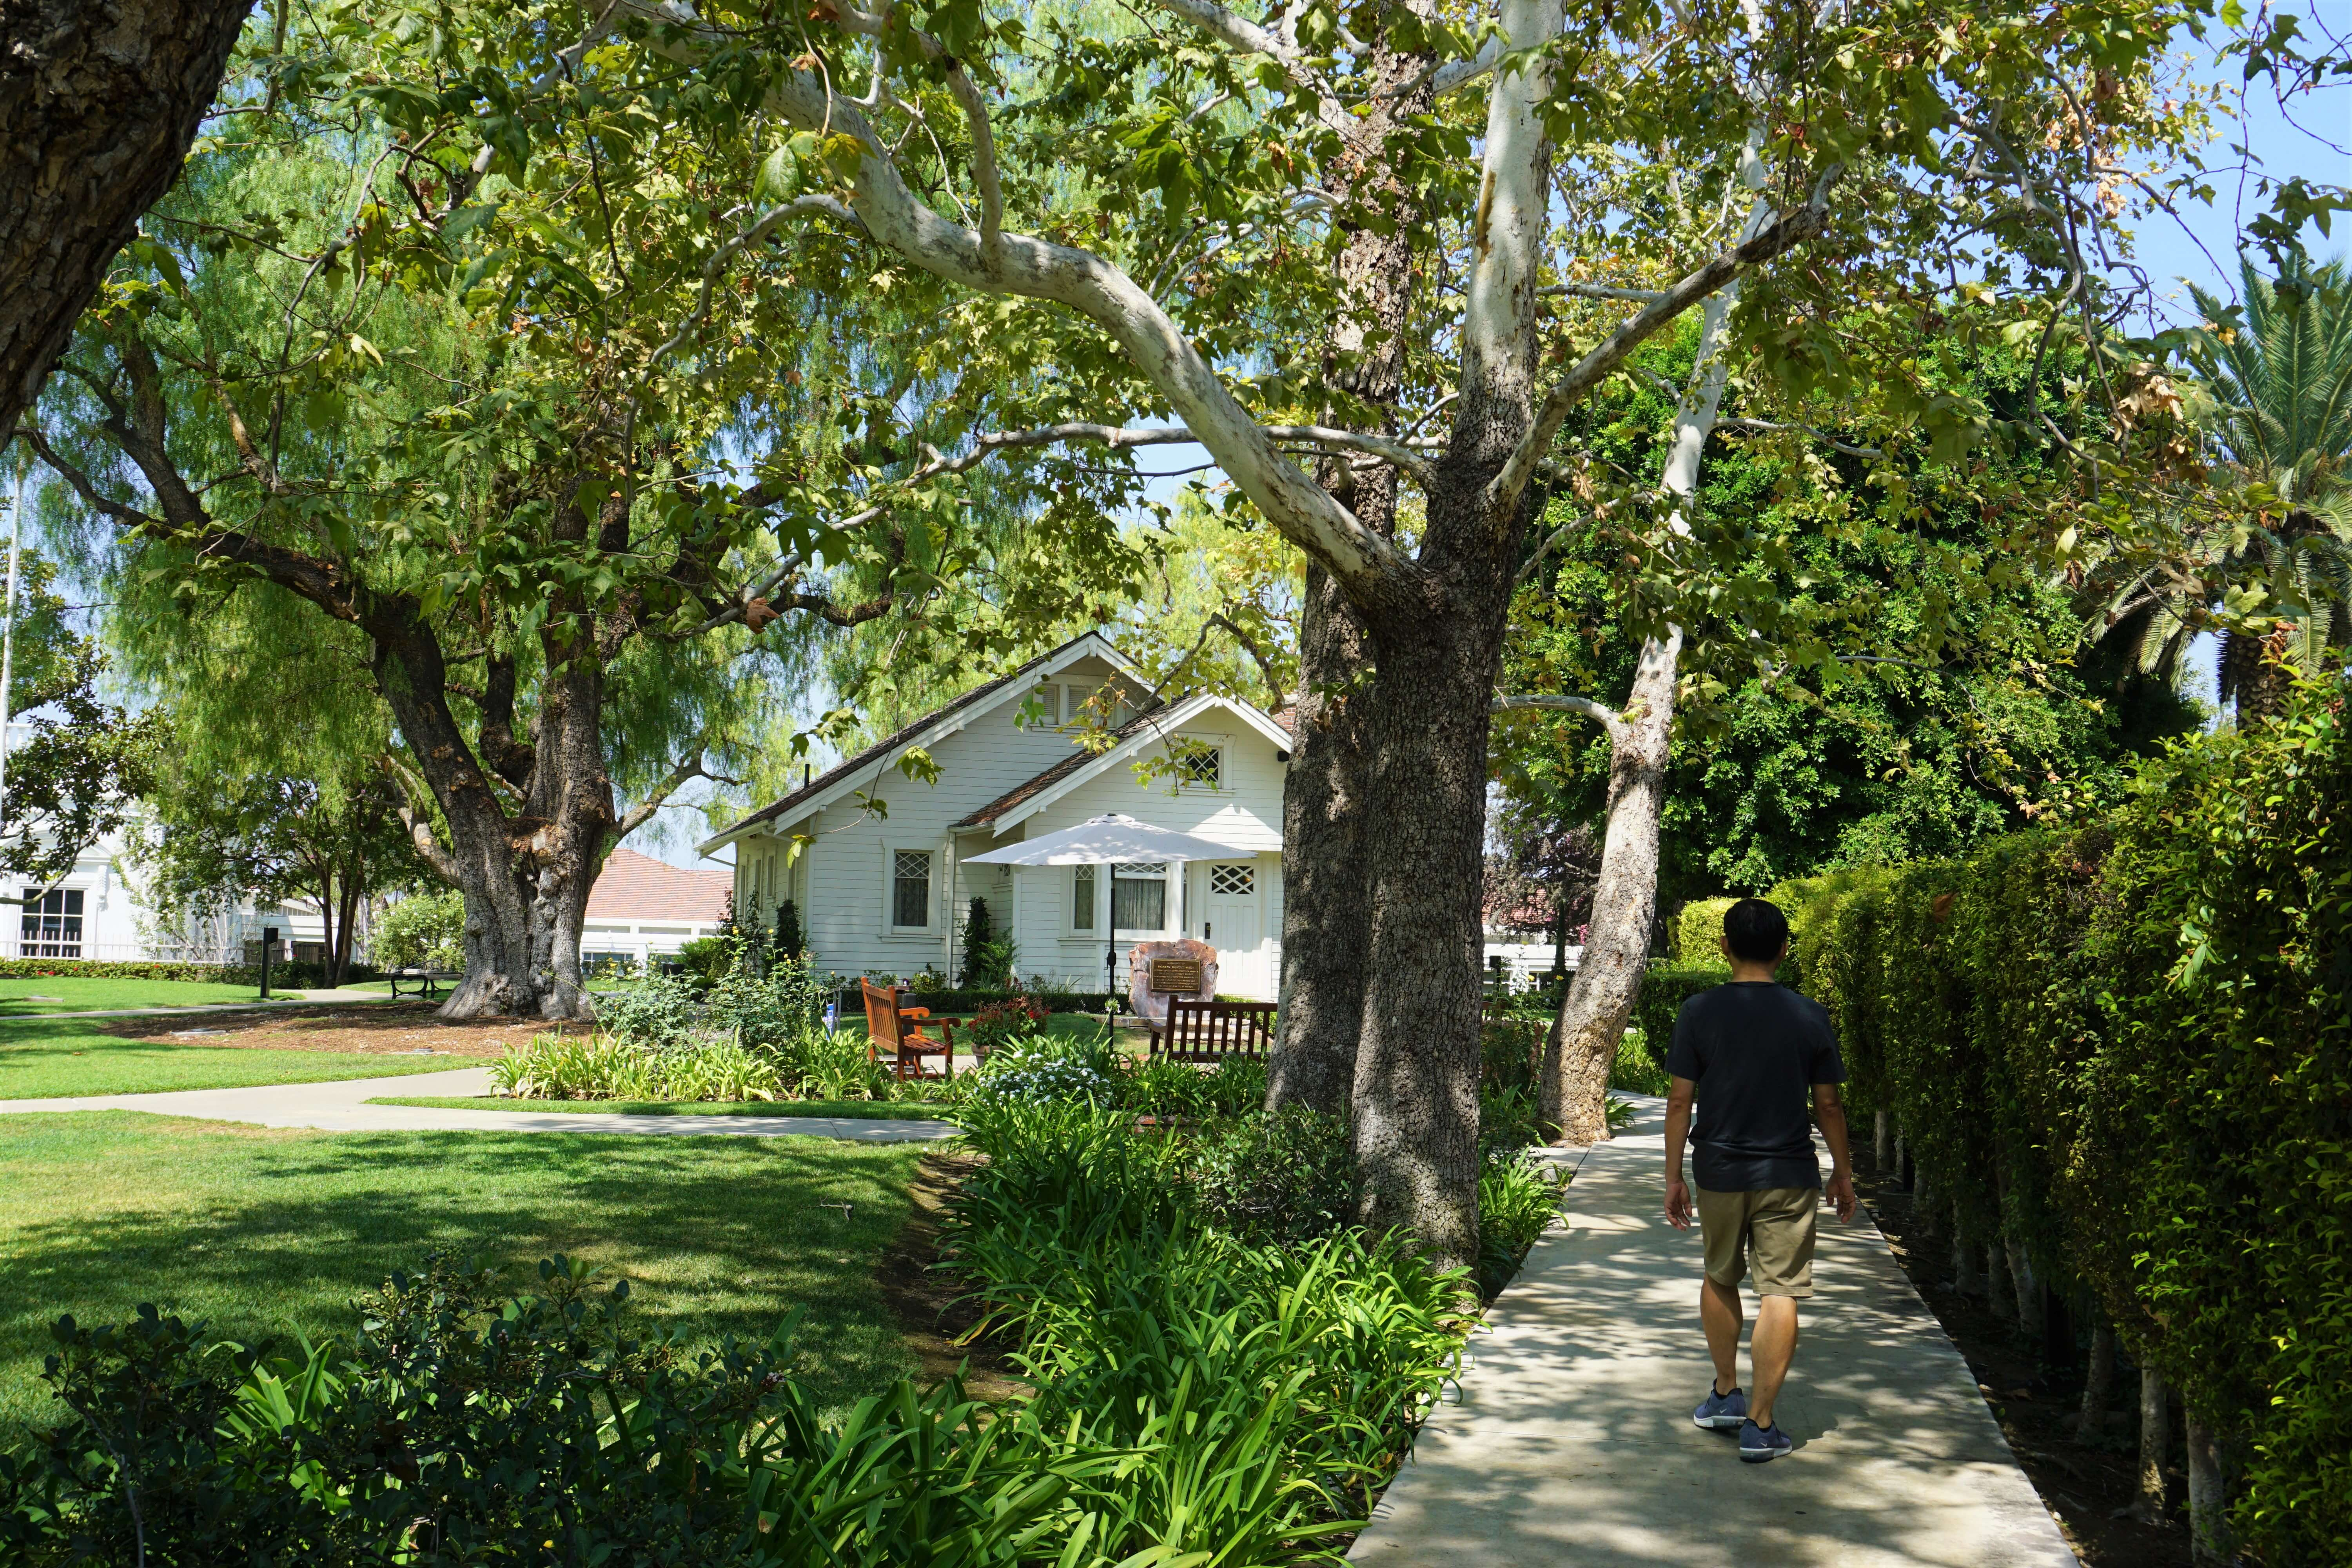 Nixon's childhood home displayed at the Richard Nixon Presidential Library and Museum in Yorba Linda, California